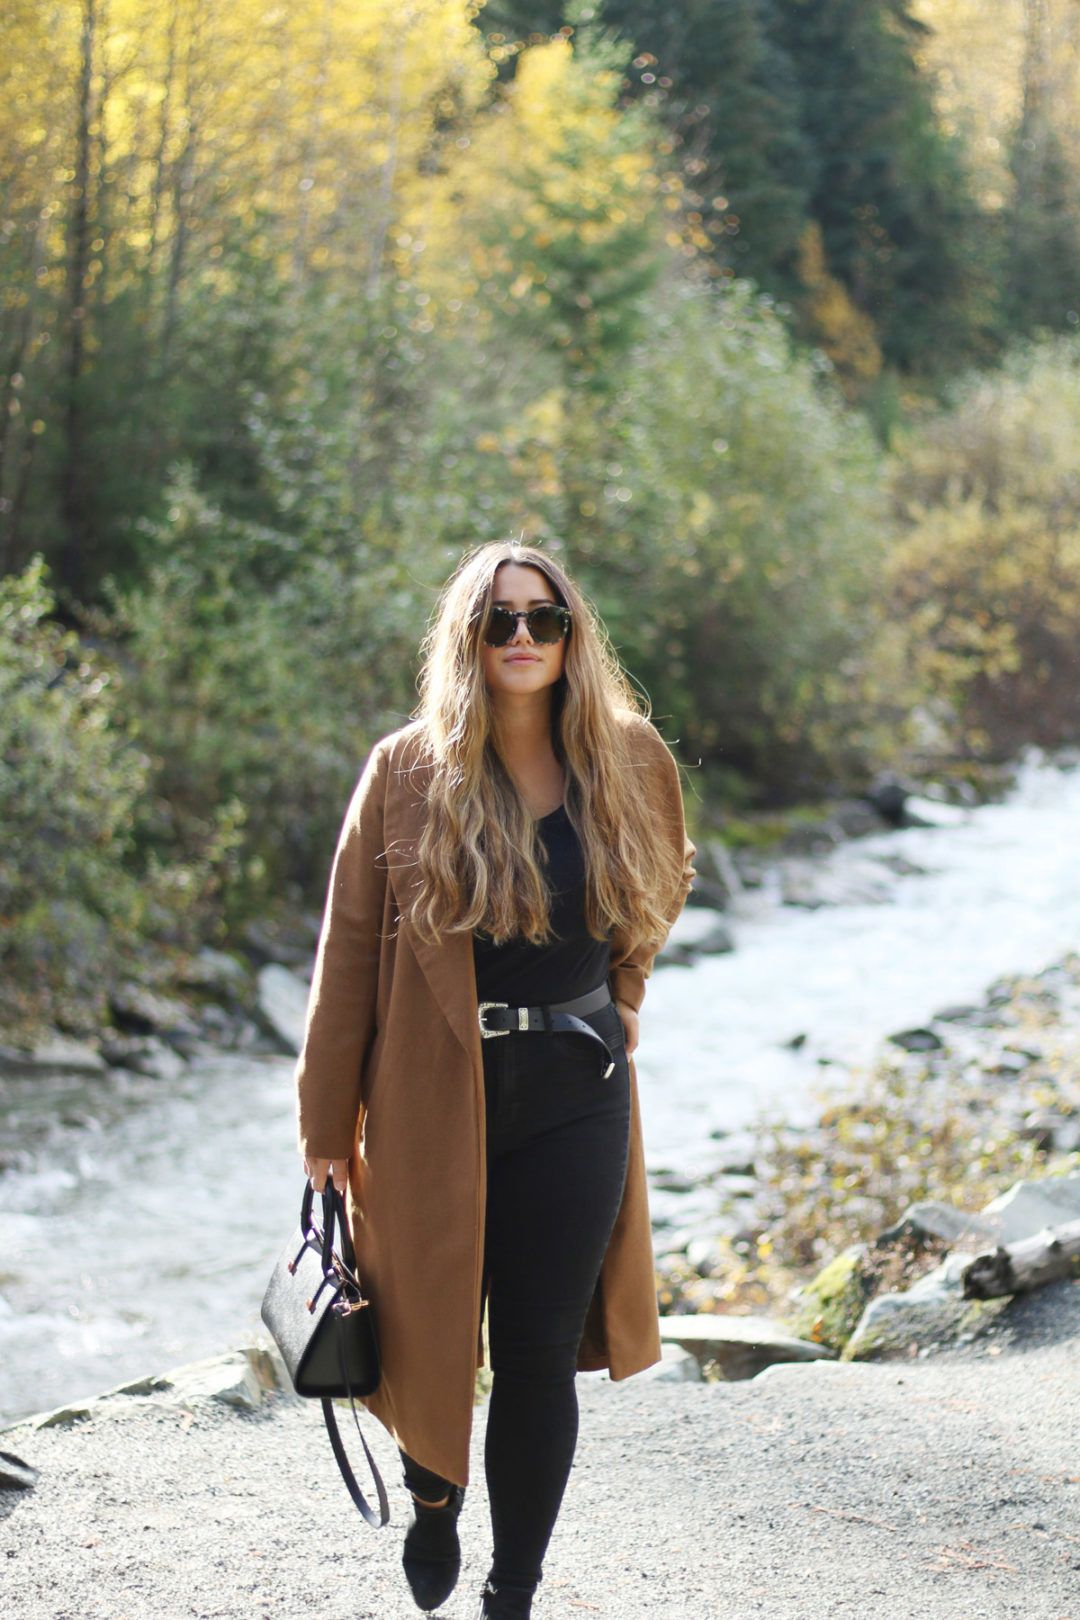 Photo of asos winter coats, alicia fashionista, vancouver style blogger, canadian type weblog, curvy outfit concepts